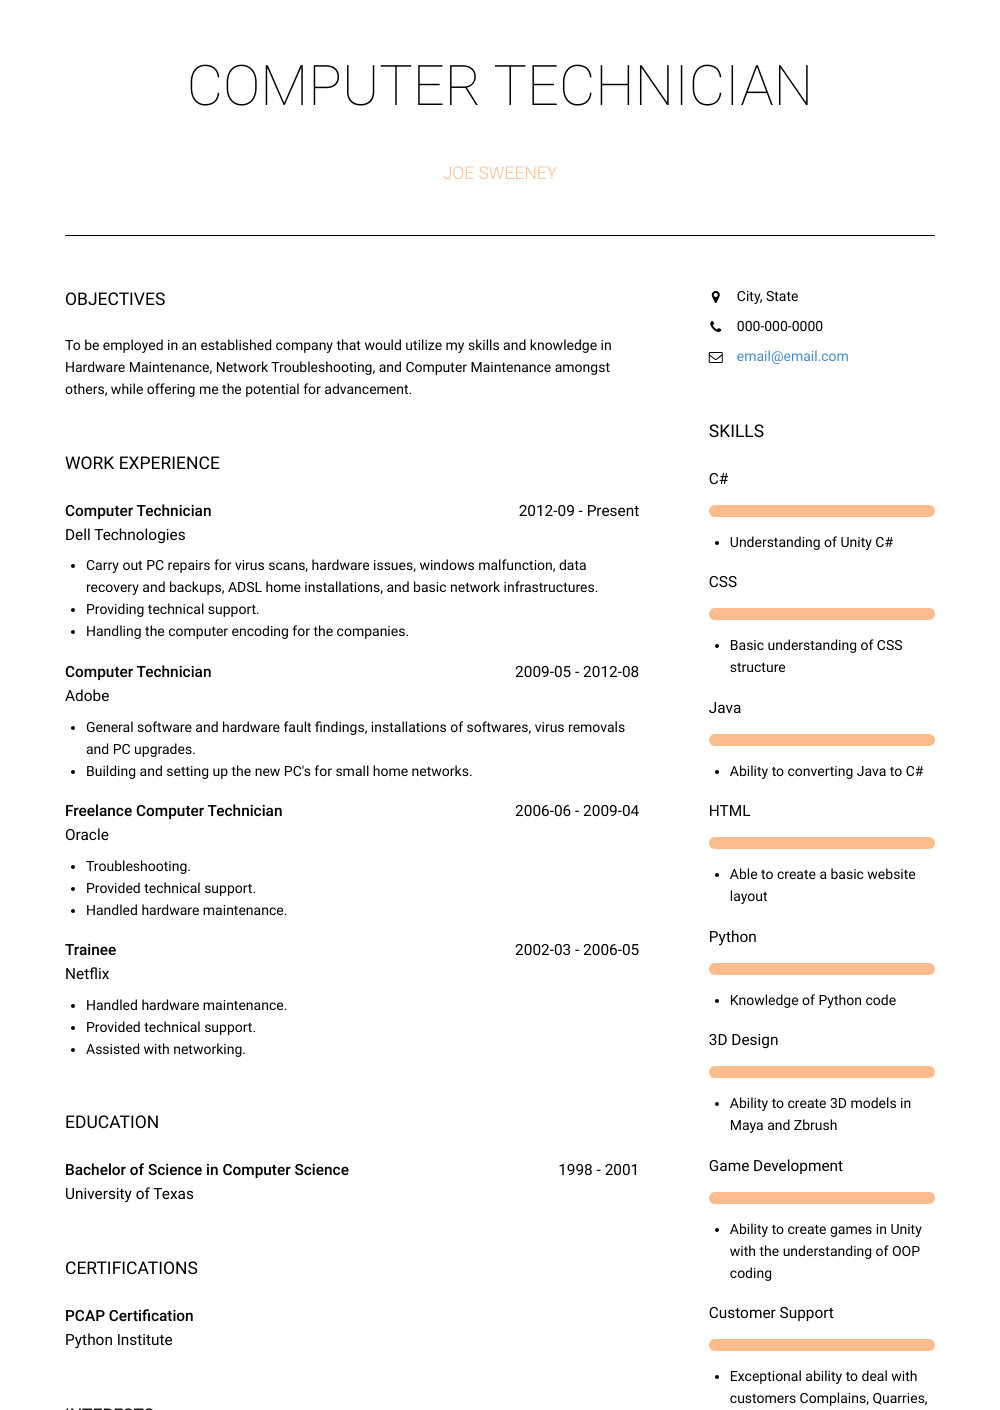 Computer Technician Resume Sample Computer Technician Resume Samples Templates Visualcv